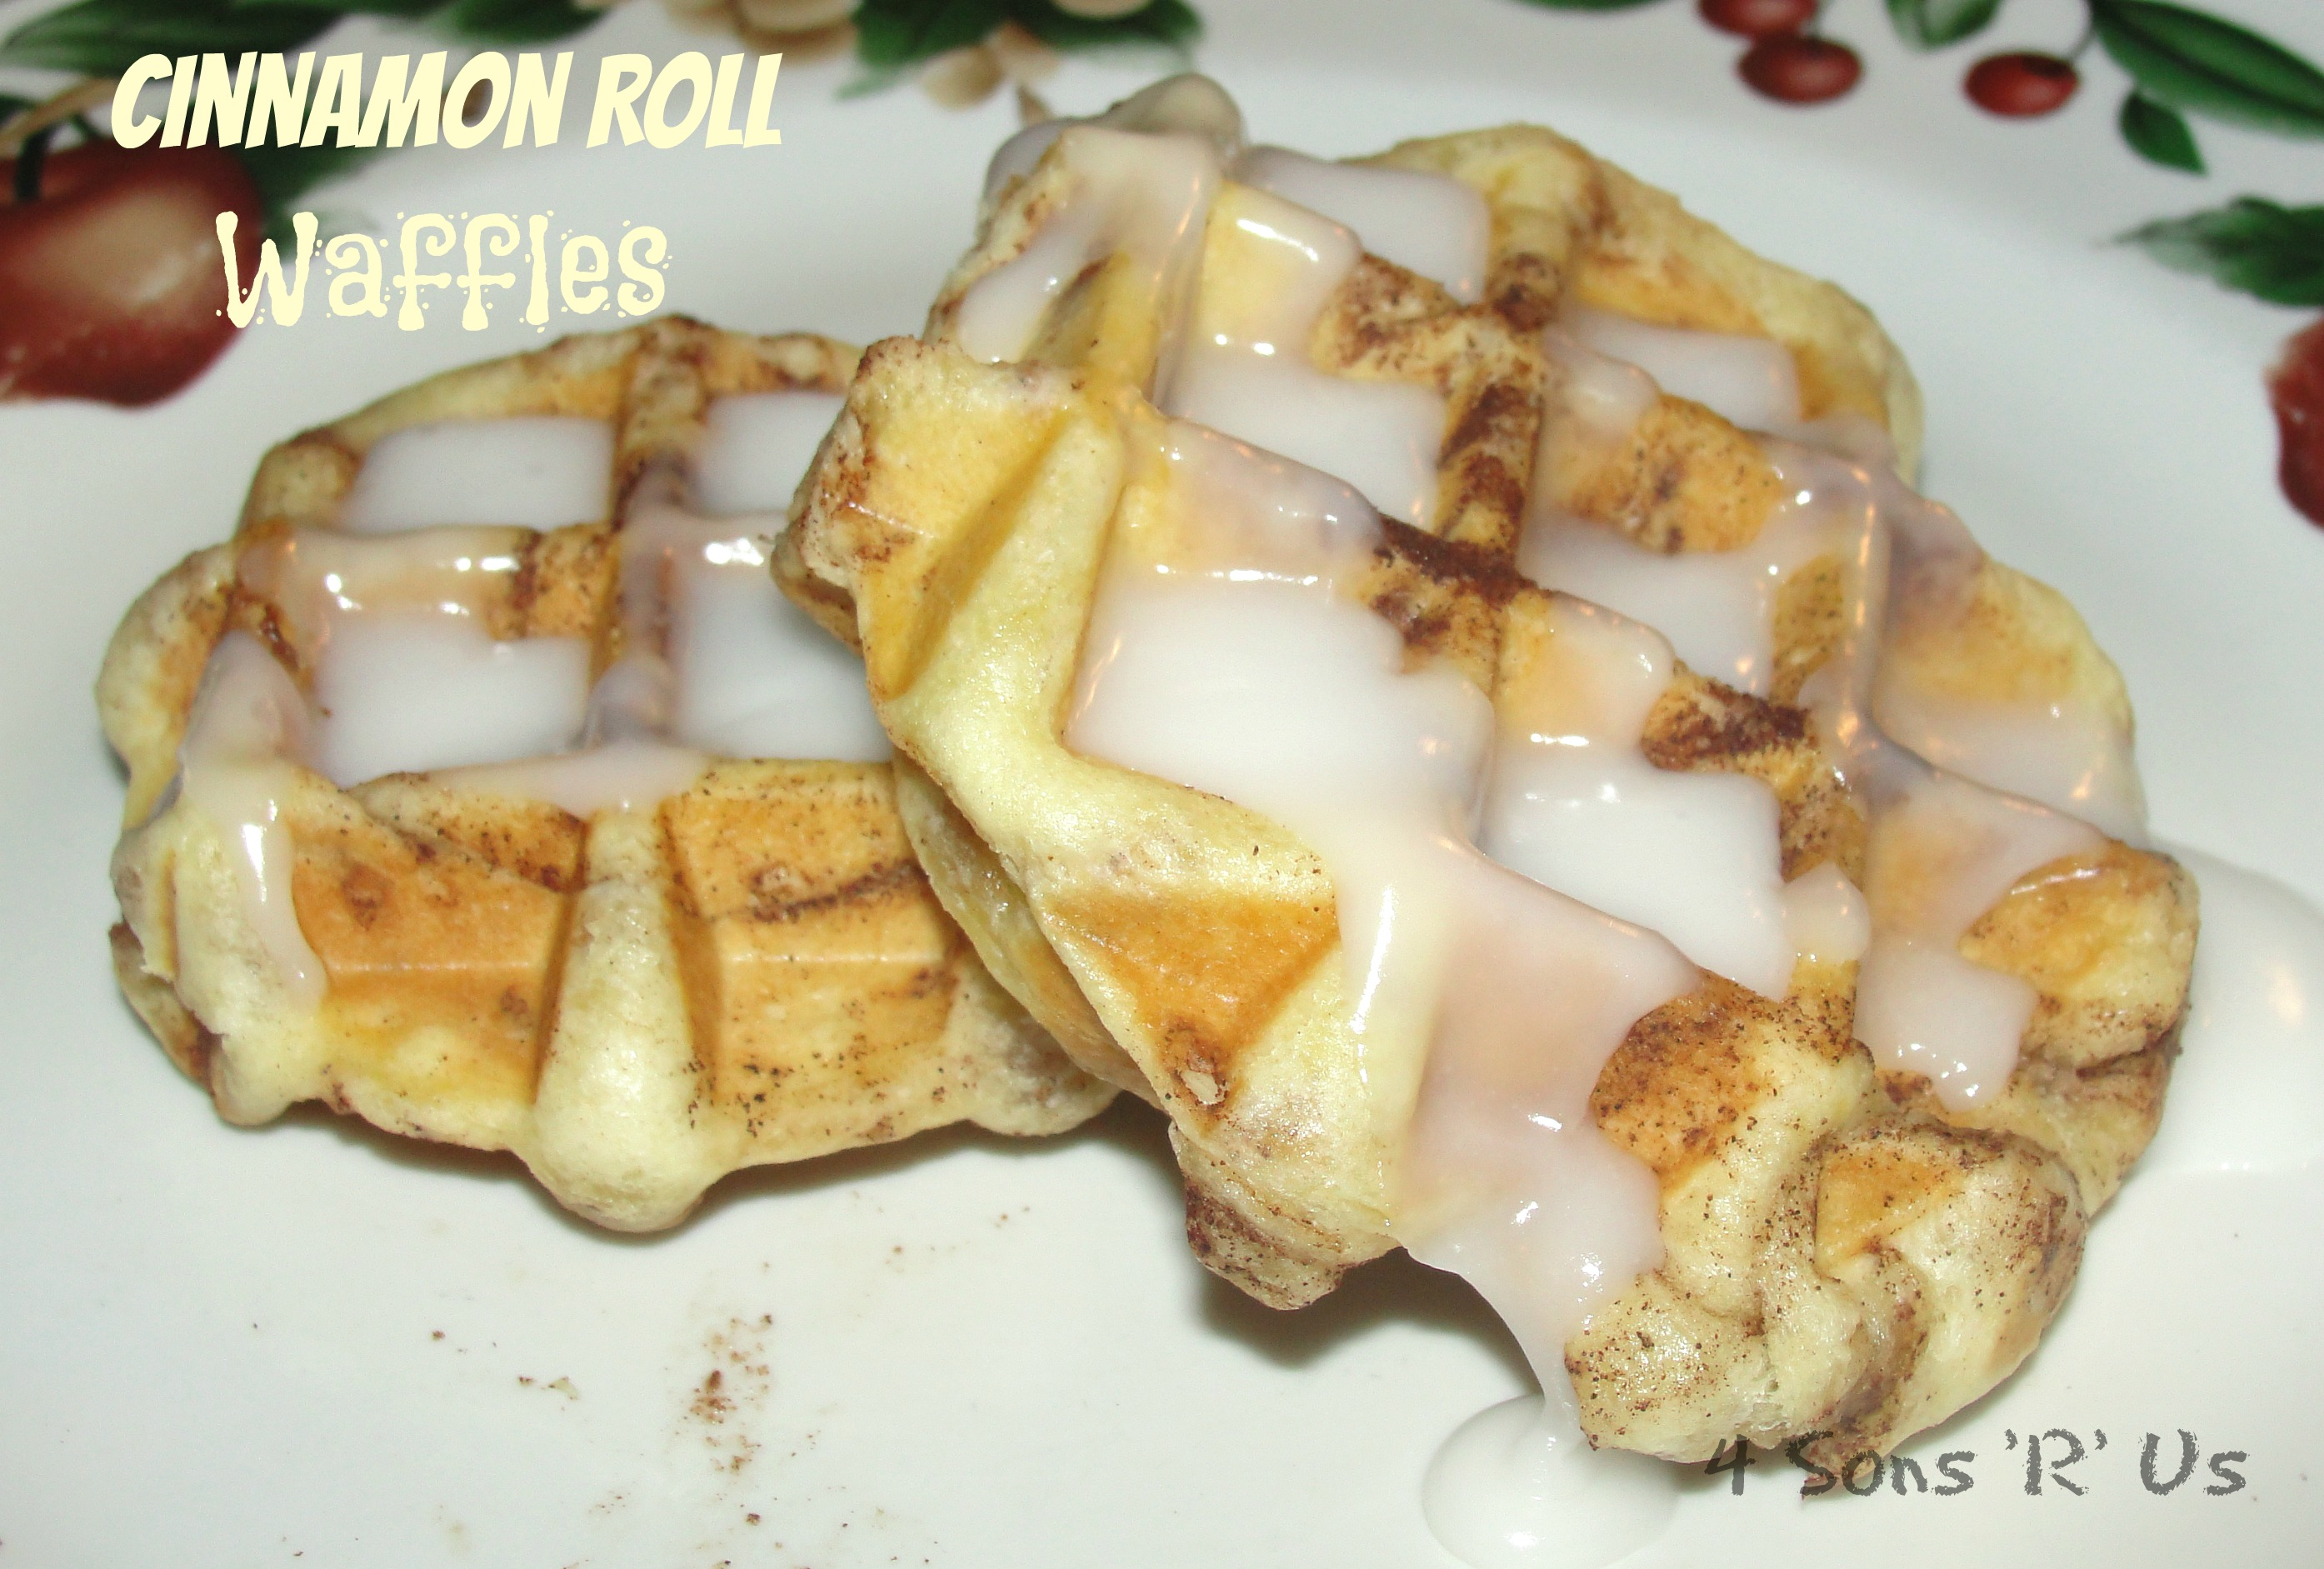 Cinnamon Roll Waffles Tumblr 85698 | NOTEFOLIO